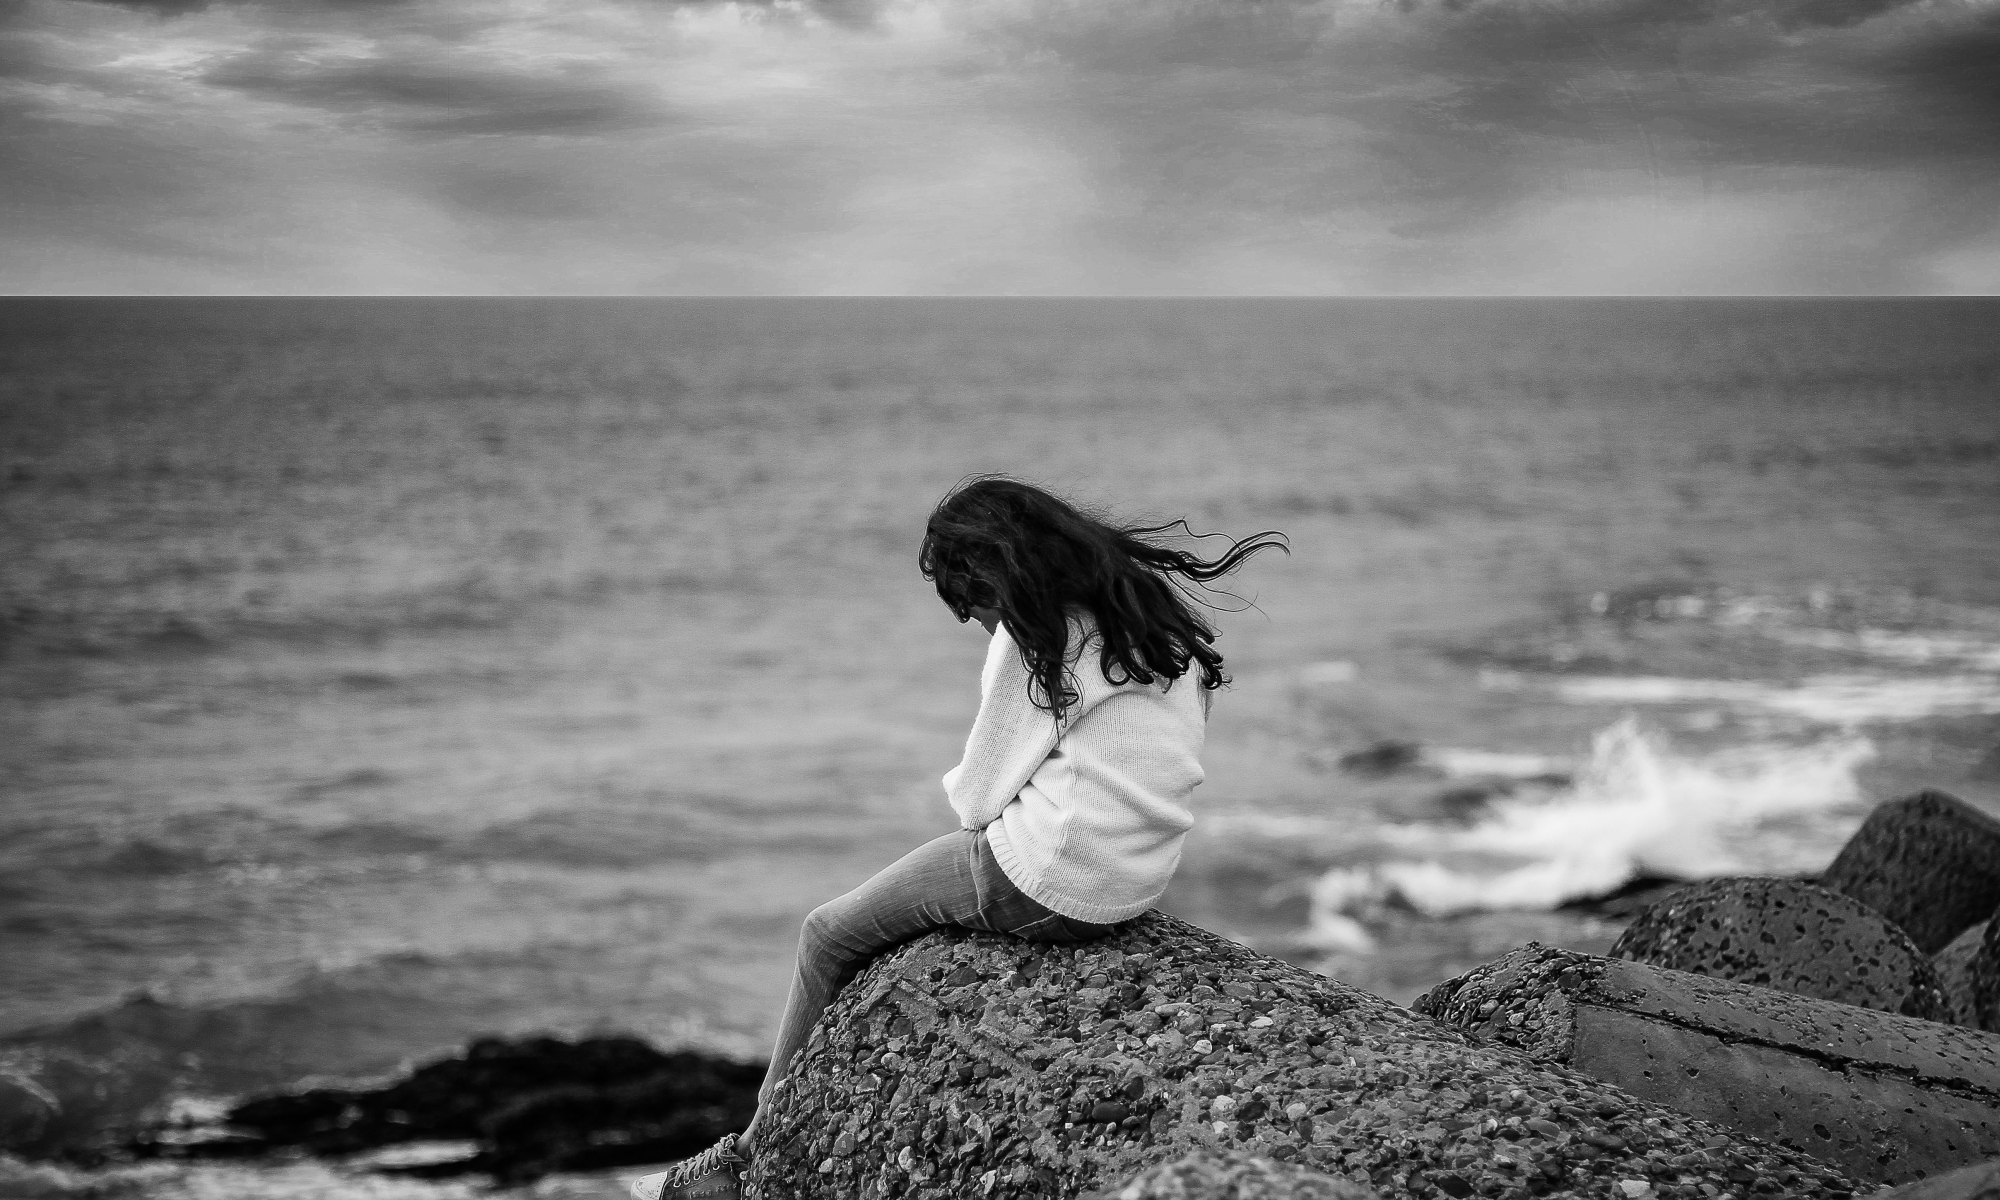 Grayscale photography of lonely woman sitting near ocean